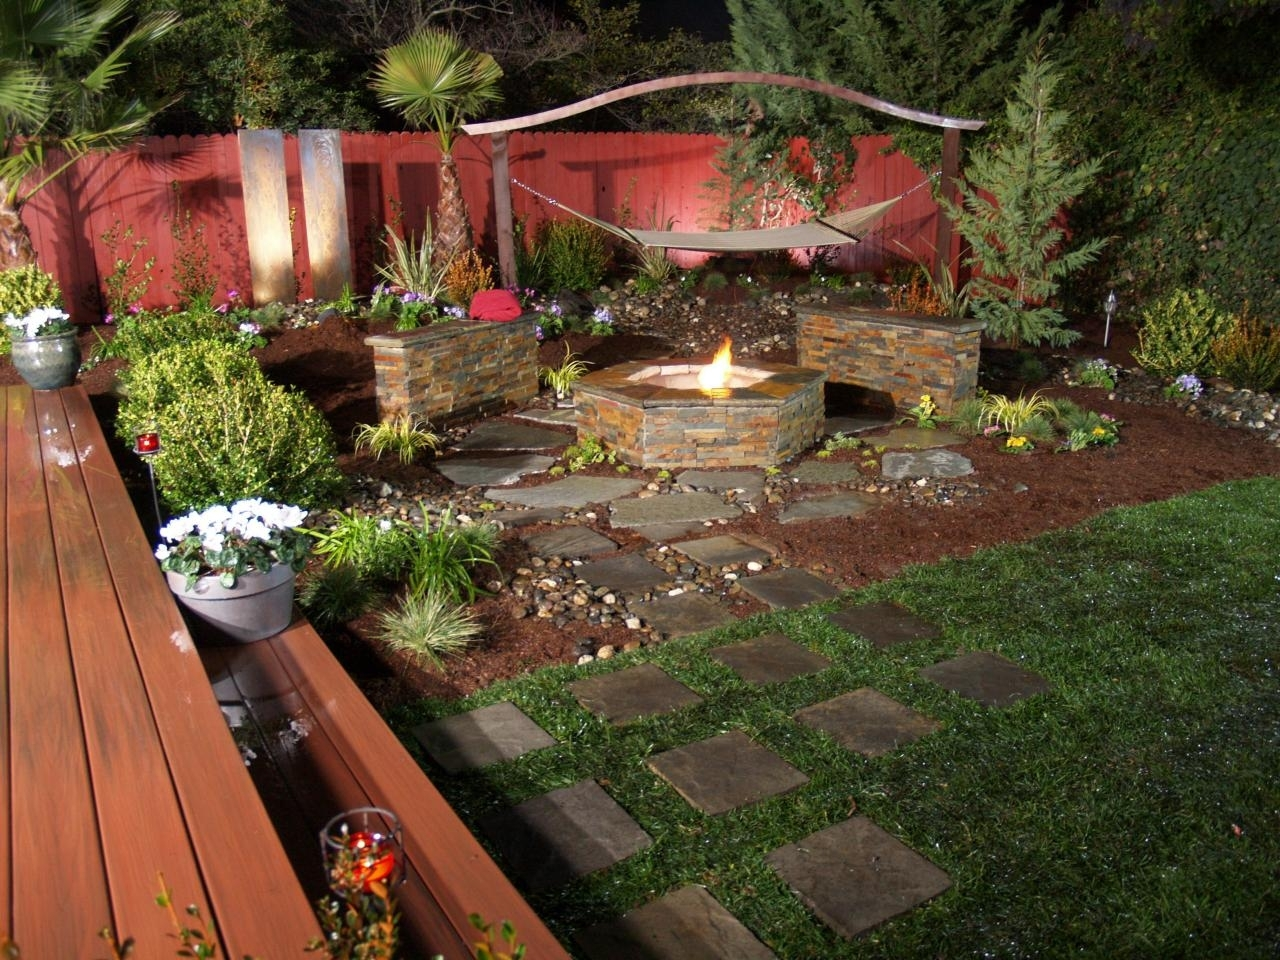 10 Great Outdoor Fire Pit Ideas Backyard %name 2020